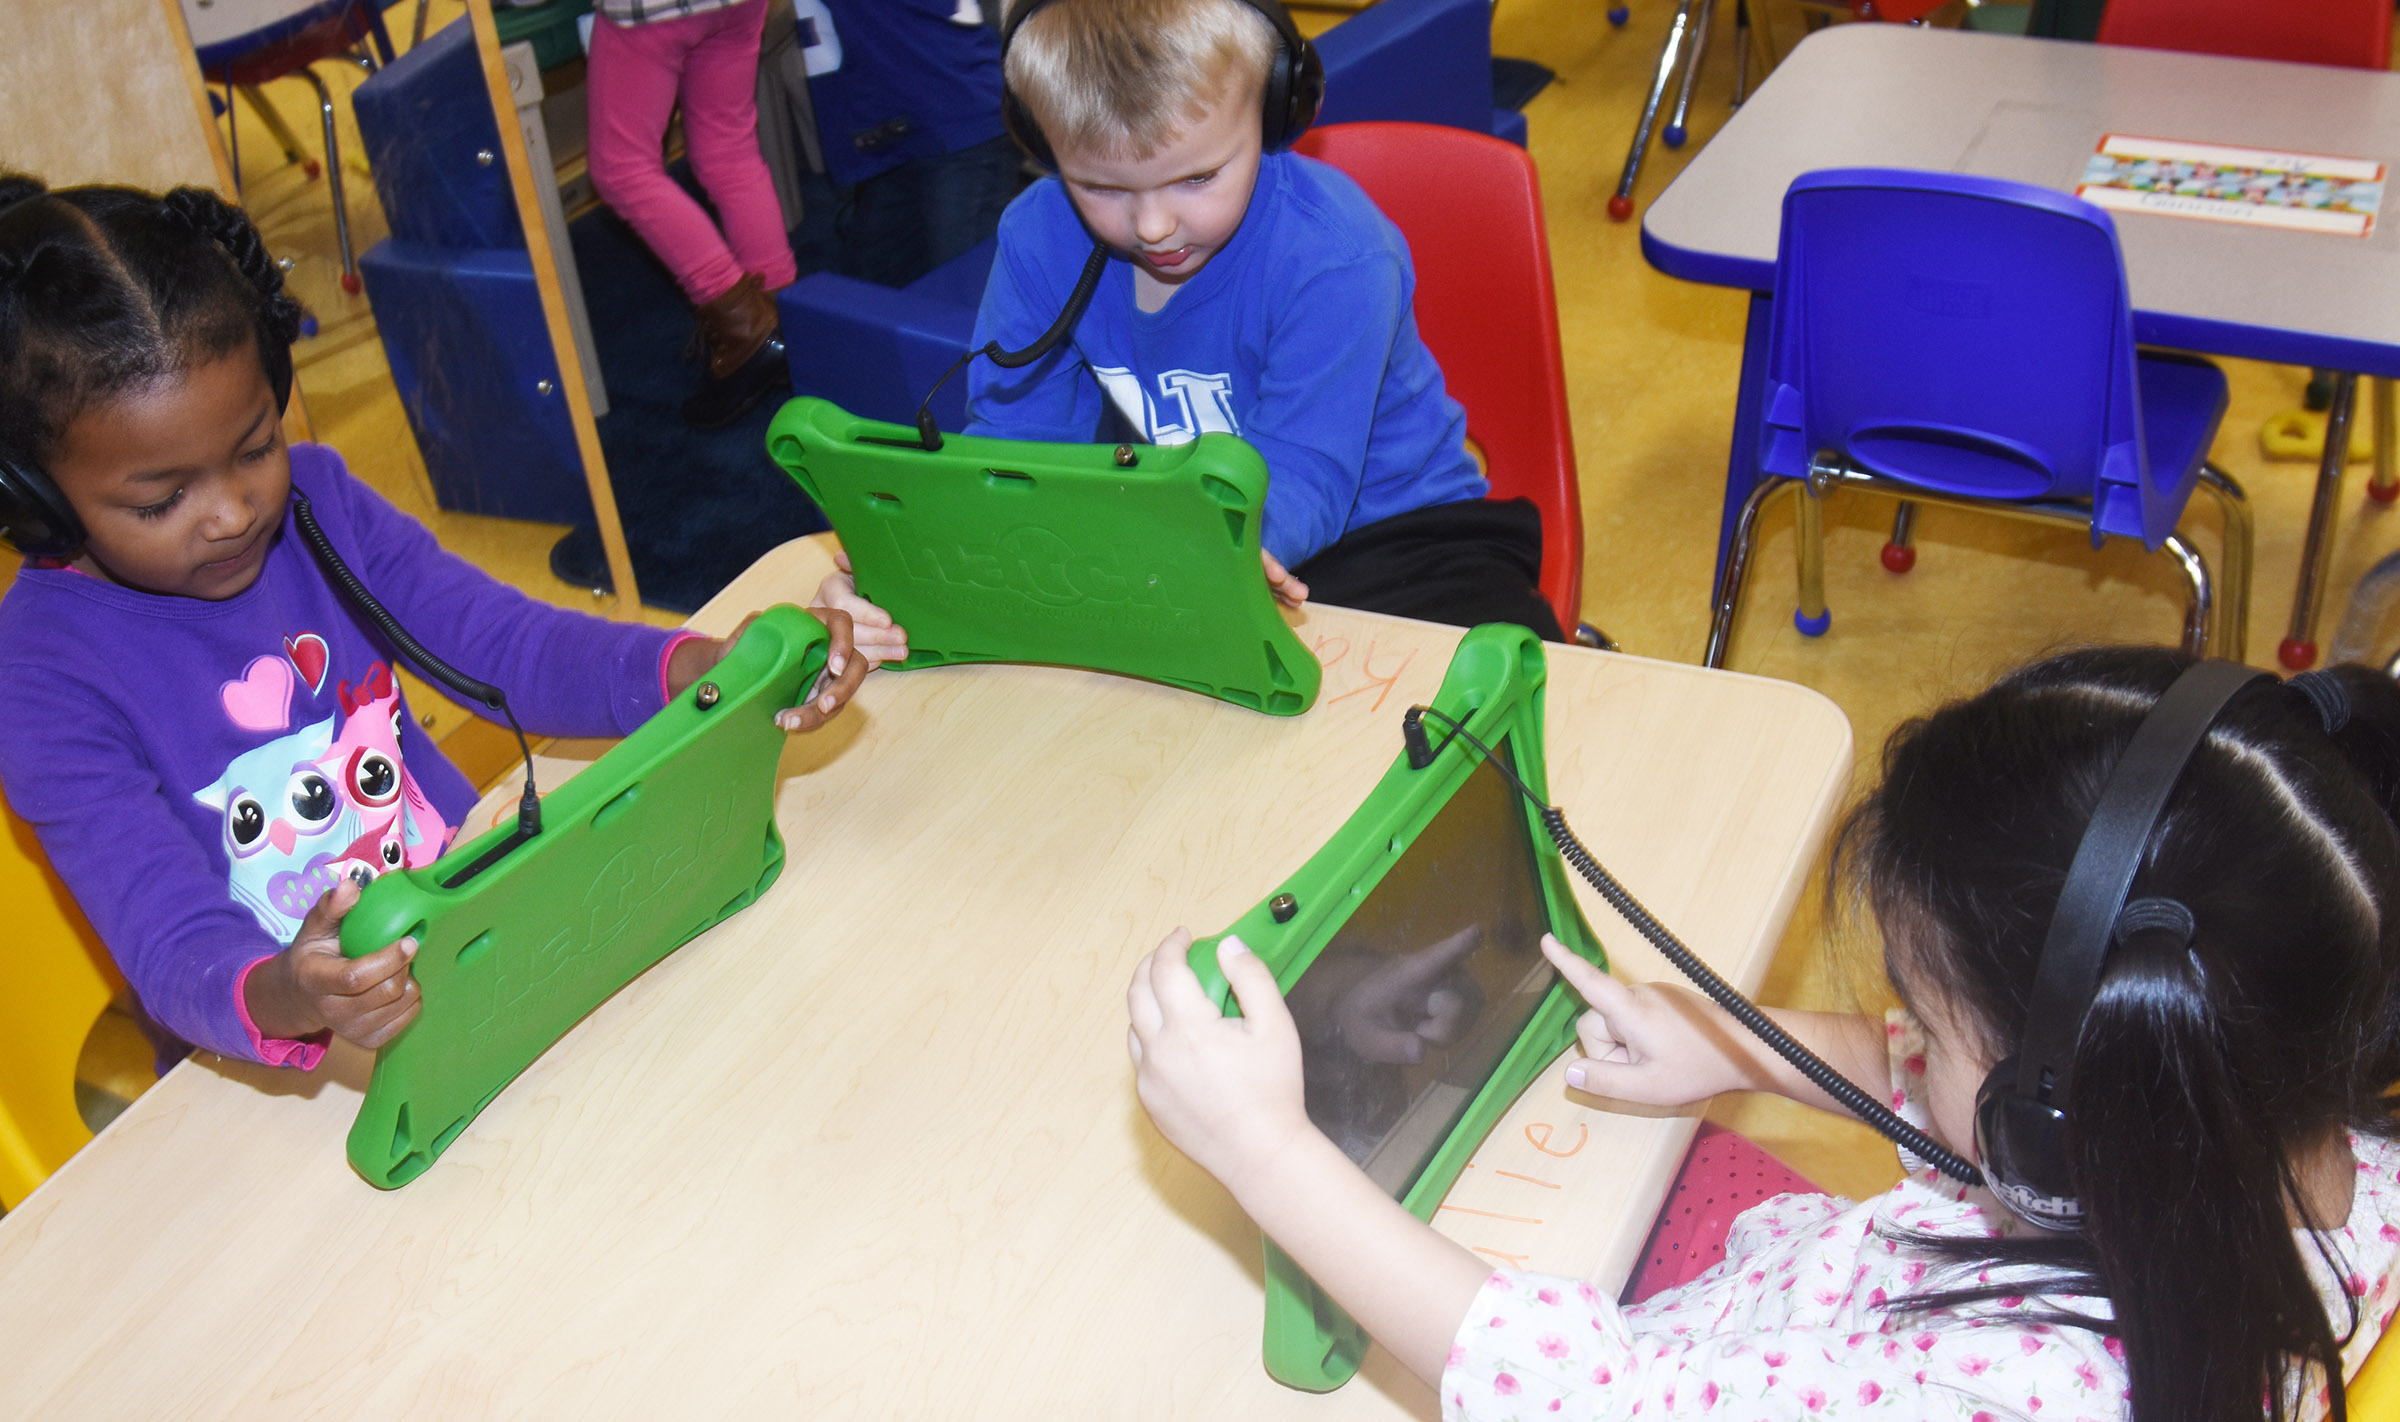 From left, CES preschool students Priyanka Flores, Hoyt Davis and Marla Bat play games on their iStartSmart tablets.